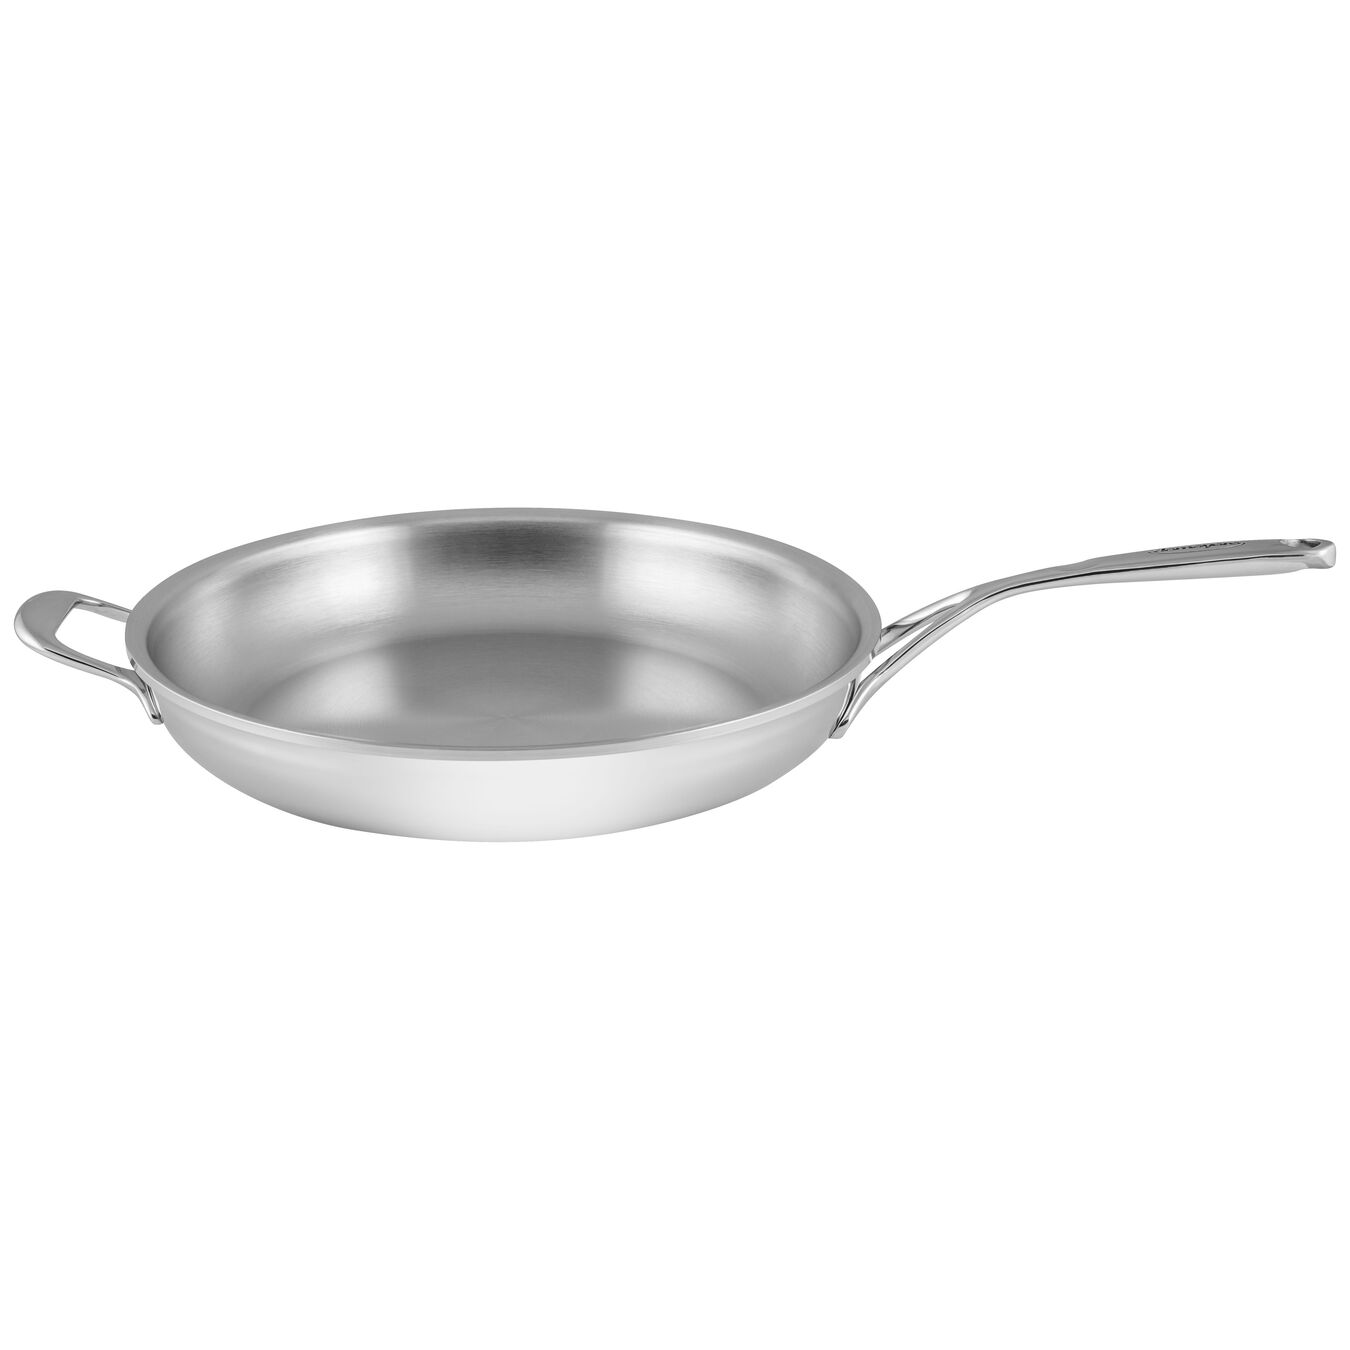 32 cm 18/10 Stainless Steel Poêle,,large 1